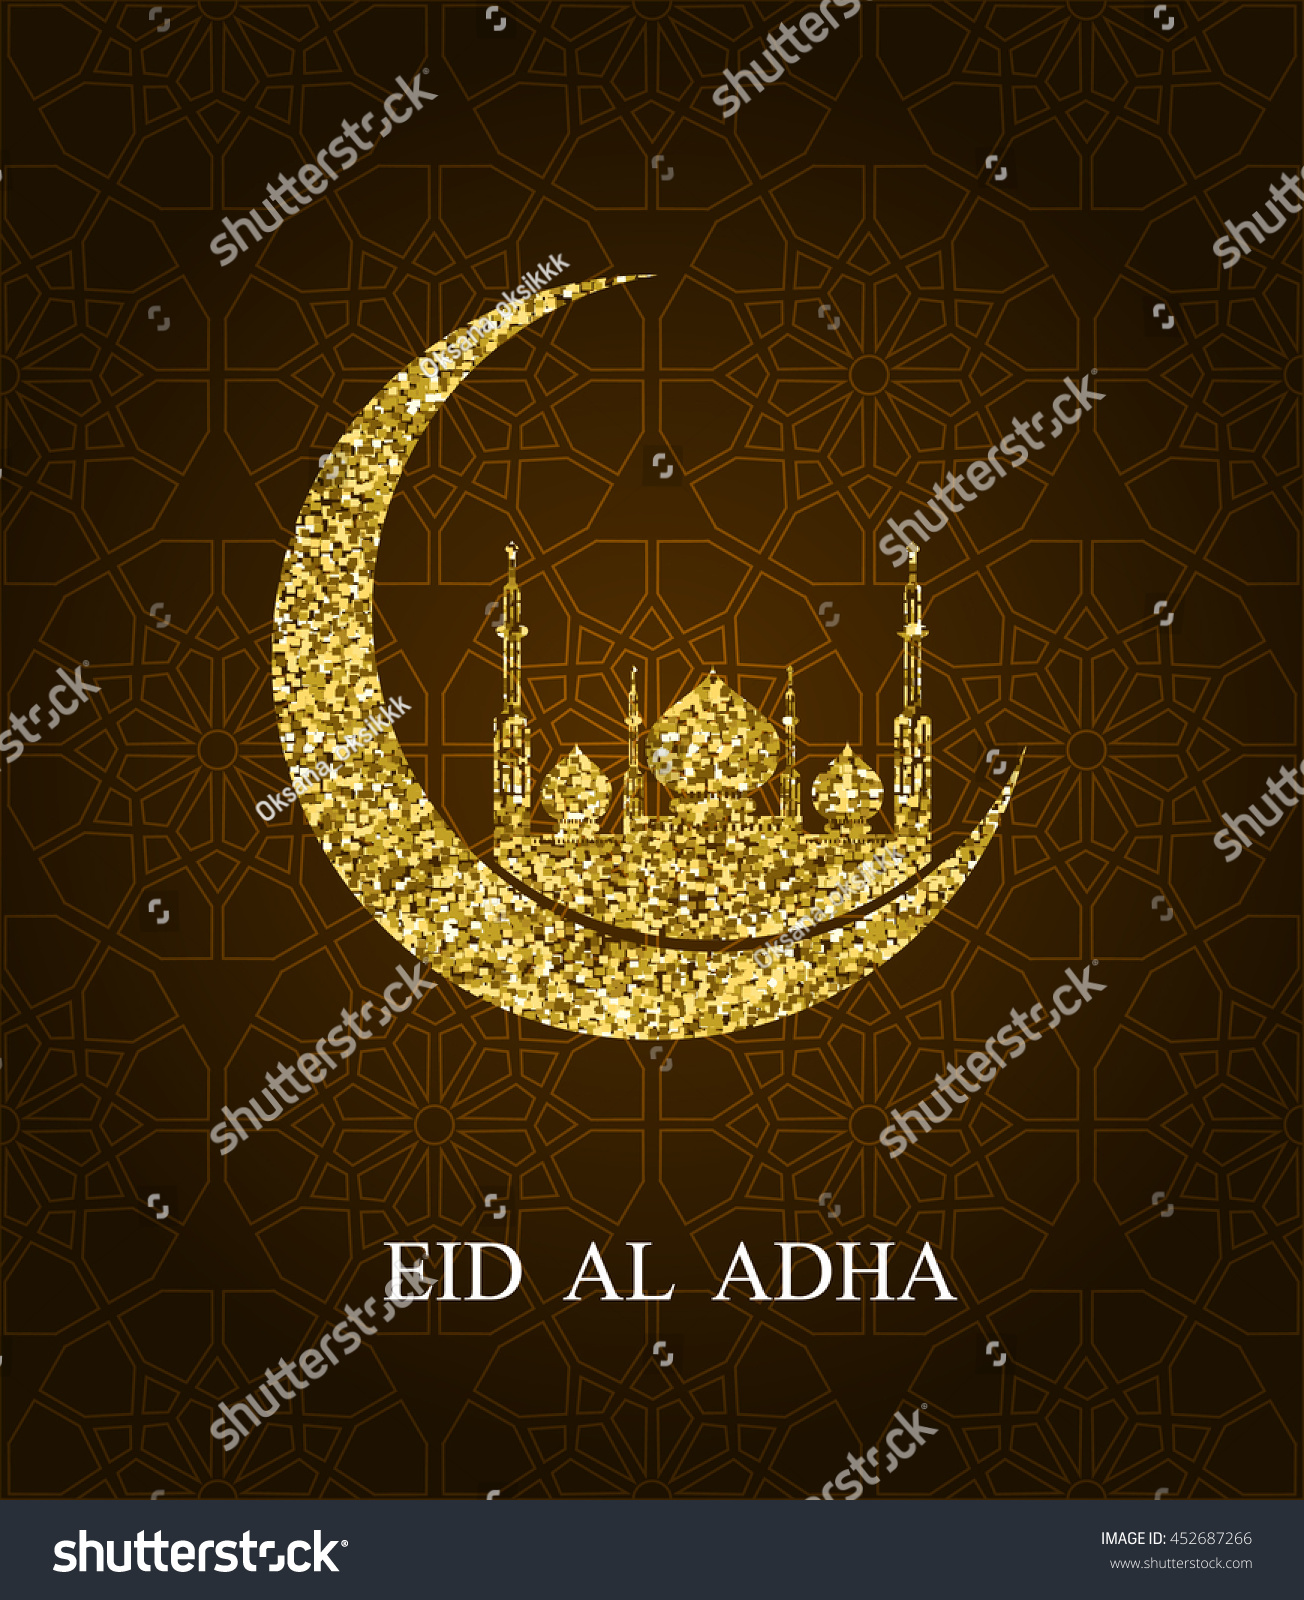 Eid al adha greeting card eid stock vector 452687266 shutterstock eid al adha greeting card eid mubarak glitter effect crescent moon and mosque silhouette on kristyandbryce Images